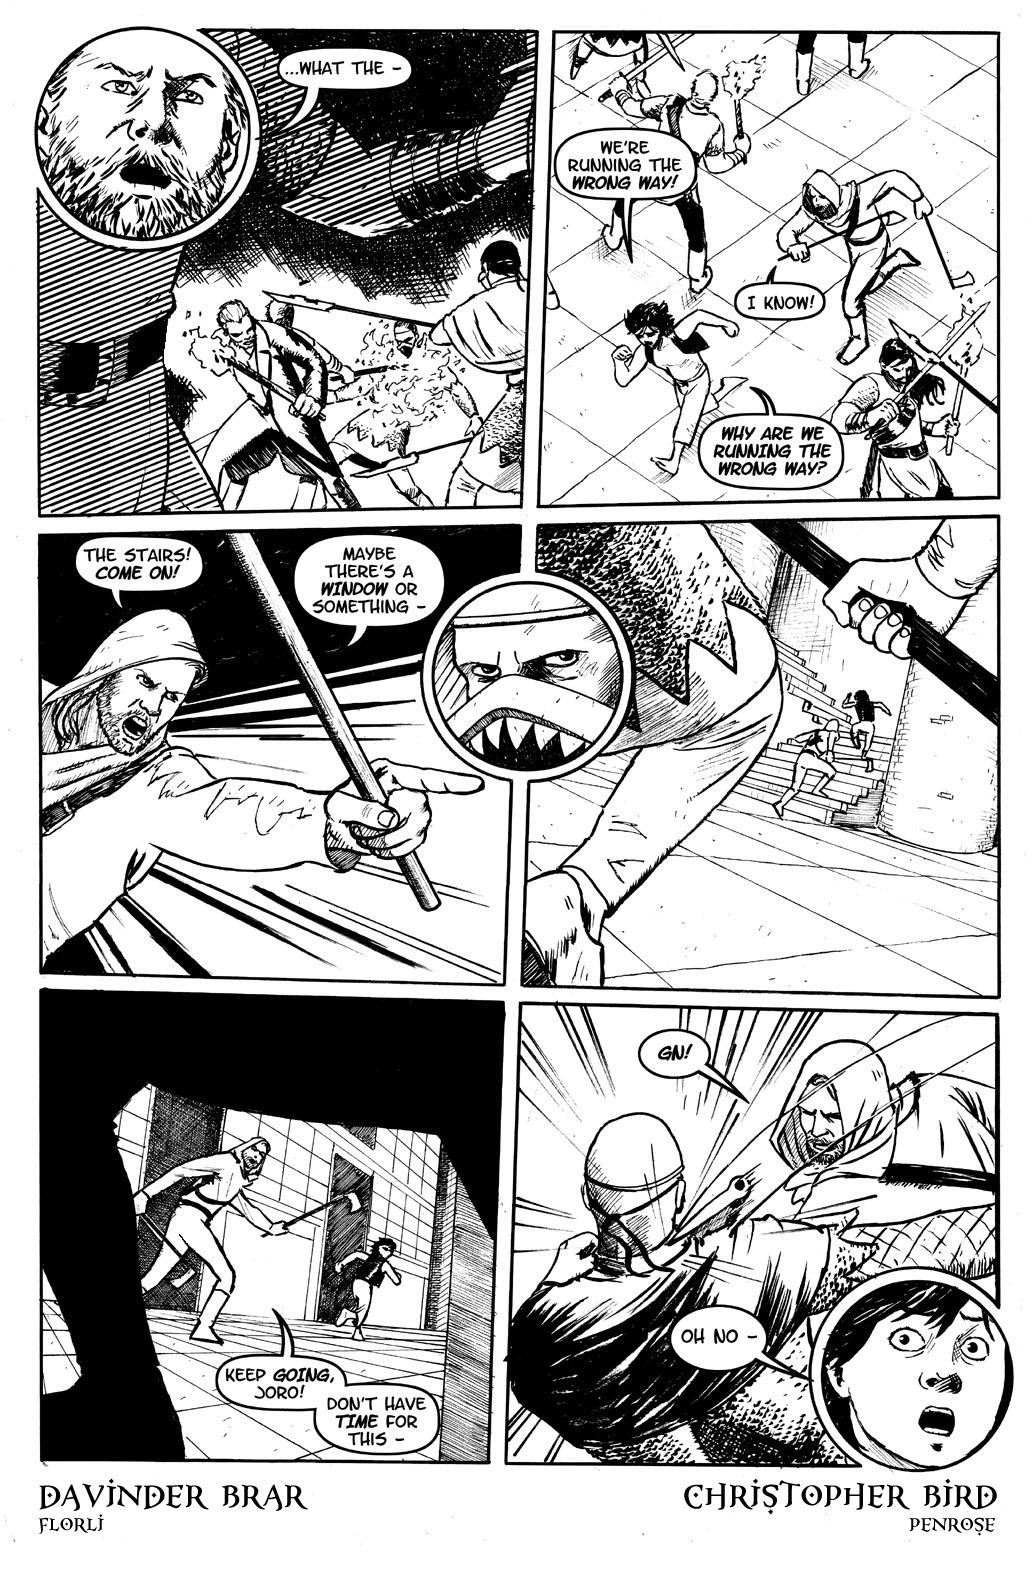 Book 3, page 24